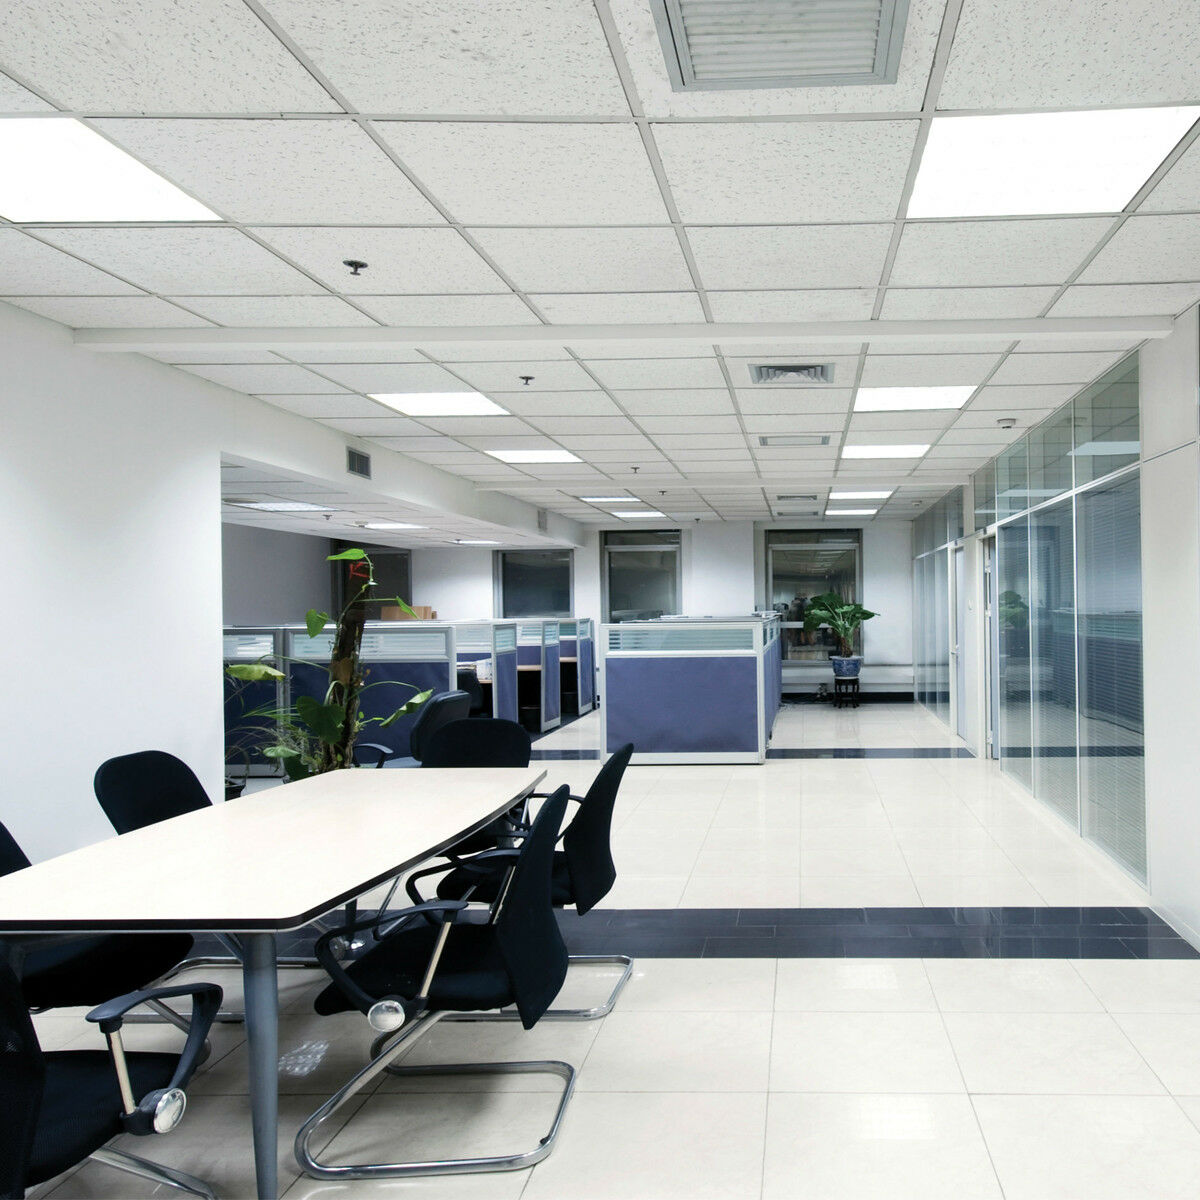 Office Ceiling Lighting: 40W Ceiling Suspended Recessed LED Panel White Light